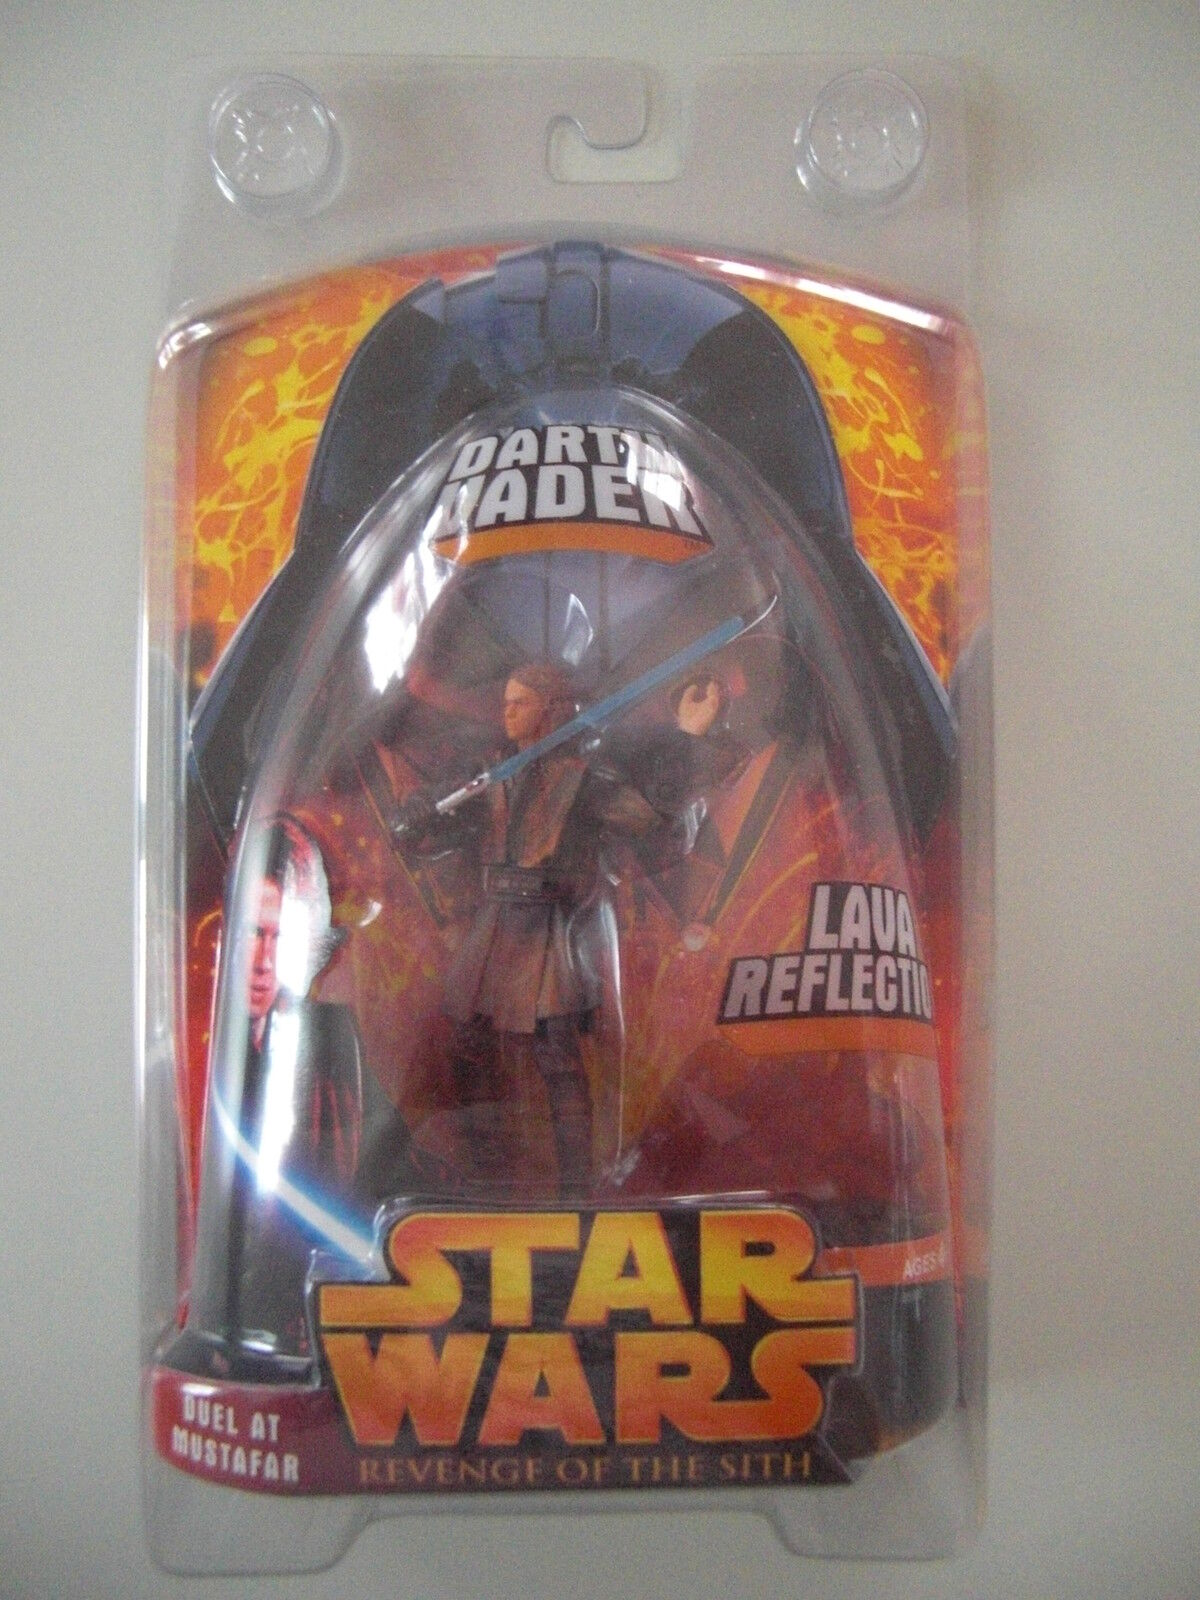 STAR WARS FIGURINE DARTH VADER DUEL AT MUSTAFAR SOUS BLISTER RARE NEUF